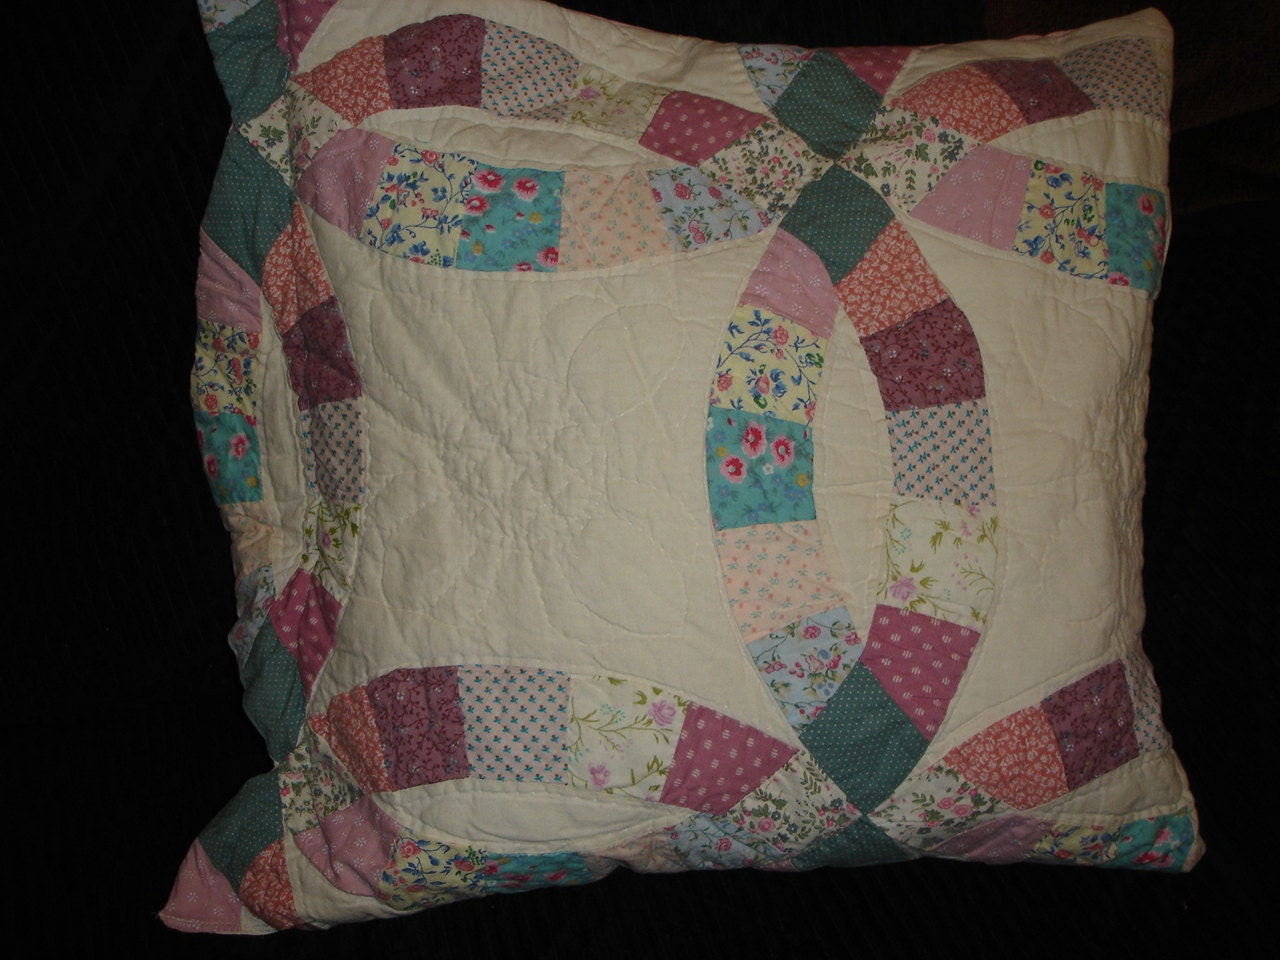 Quilted,Wedding,Ring,Pillow,Pocket,18,inch,Vintage,Upcycled,Quilt,Housewares,upcycled,vintage,pillow,pillow_pocket,pillow_shell,pink_chenille,for_your_home_shop,pillow_form,home_decor,bedroom_decor,living_room_decor,throw_pillow,wedding_ring_quilt,ribbon,plastic,fabric